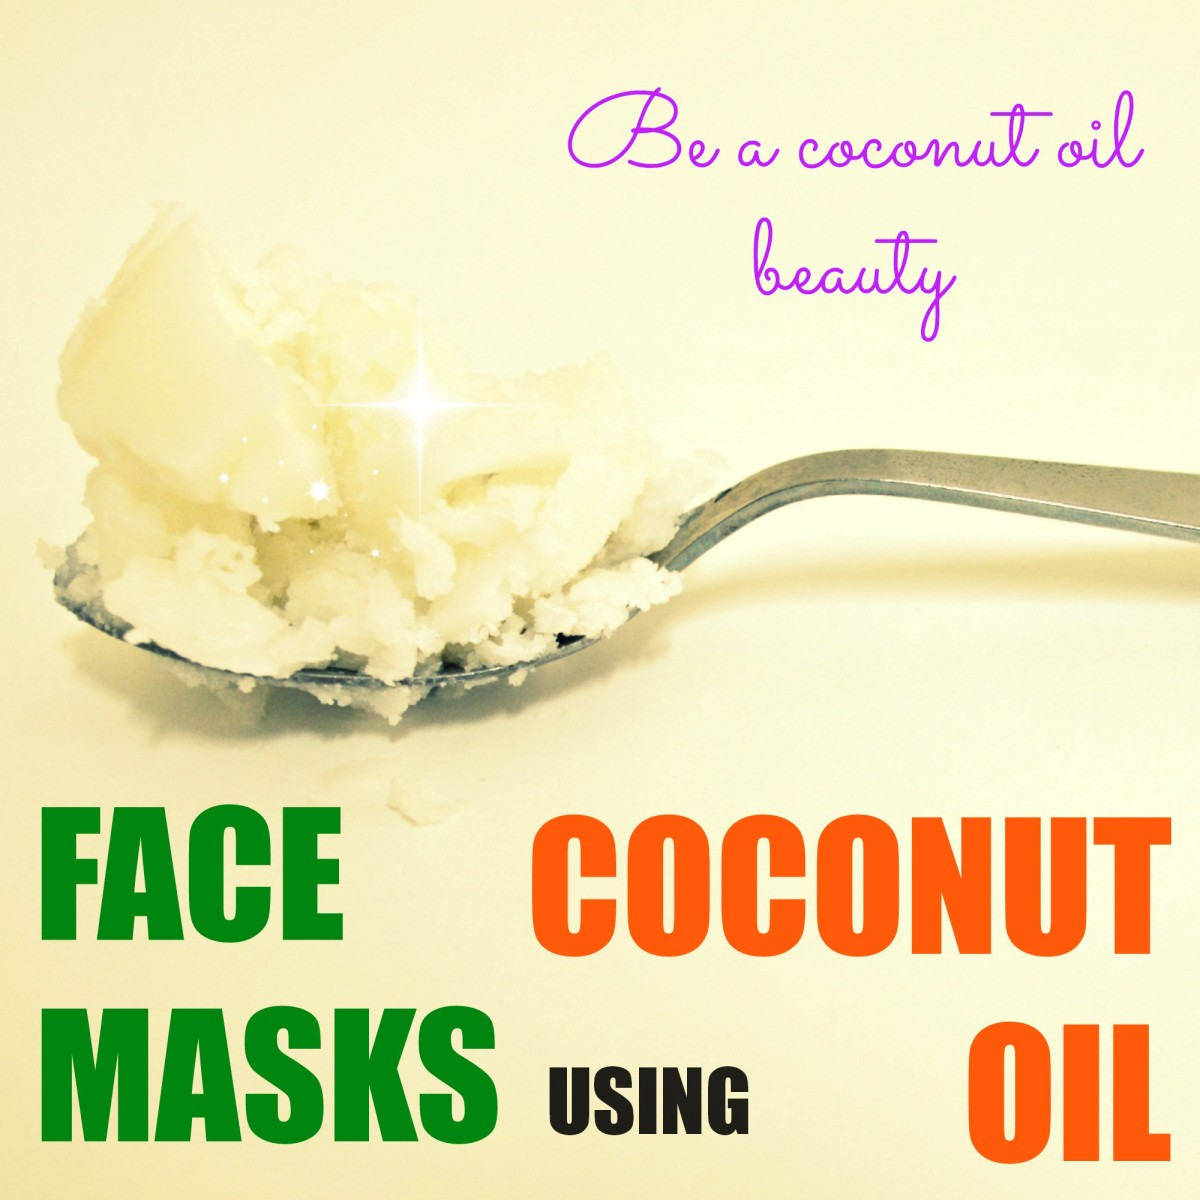 Top three coconut oil face mask recipes for healthy skin bellatory be a coconut oil beauty with sensational coconut oil face masks solutioingenieria